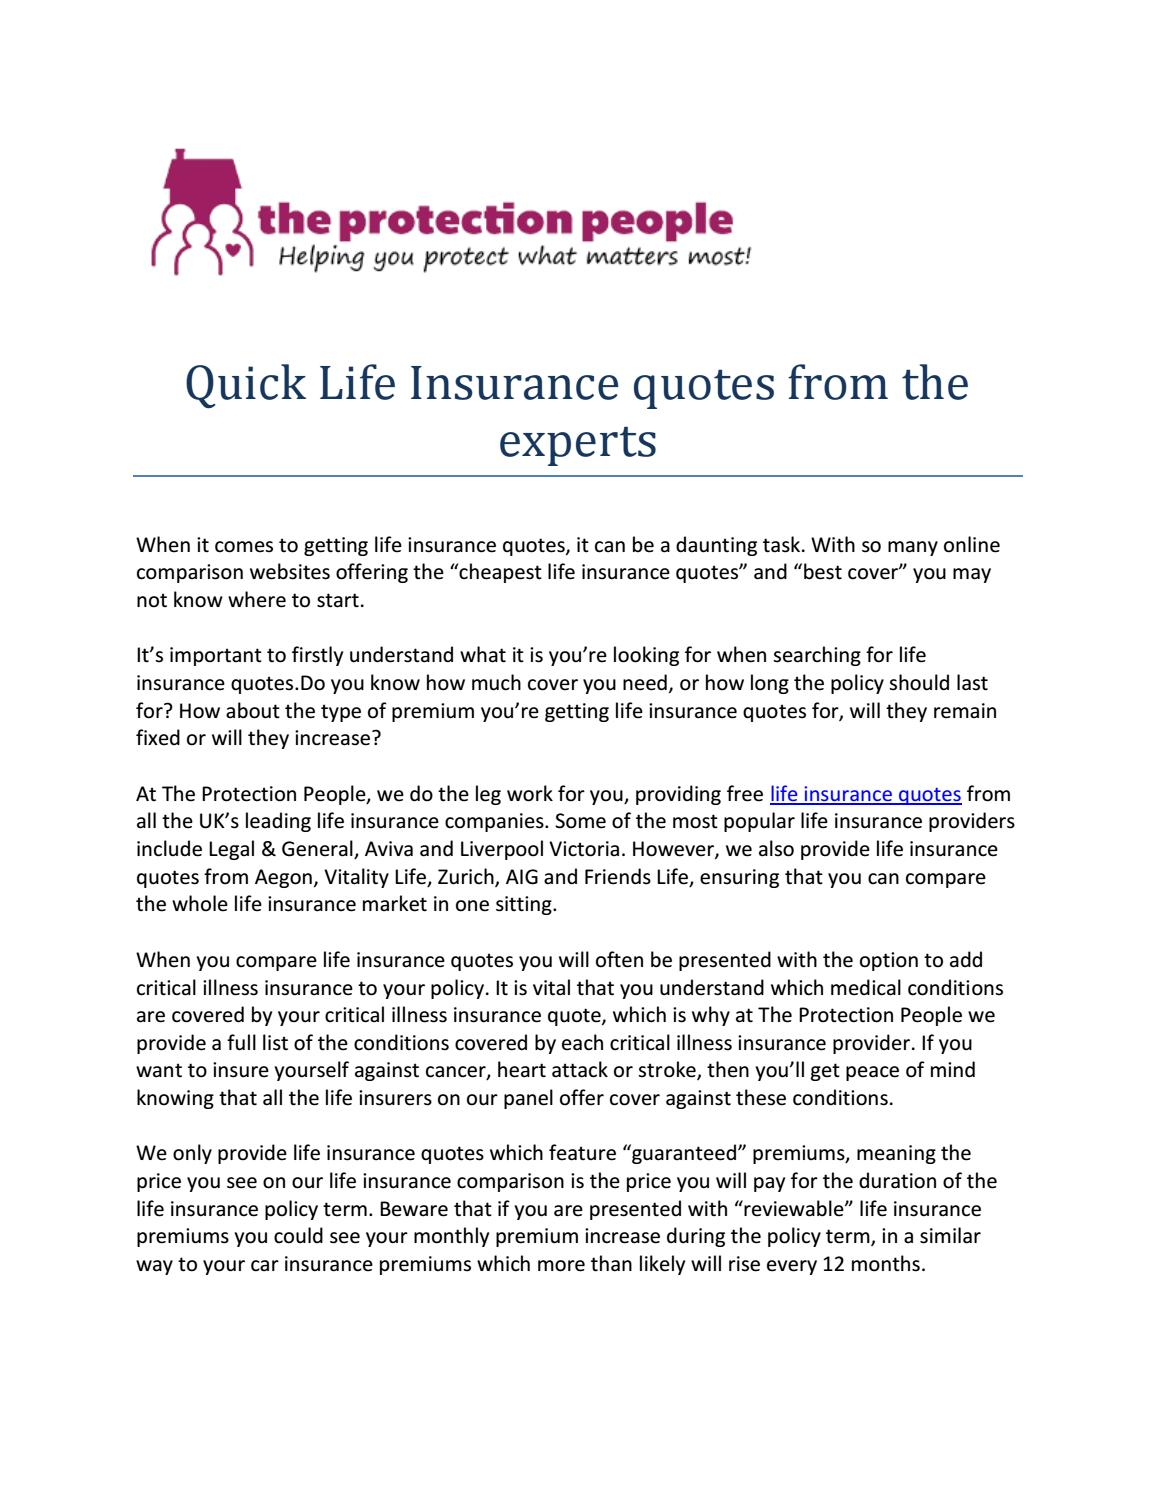 Cheap Insurance Life Quote Term The Protection People  Quick Life Insurance Quotes From The